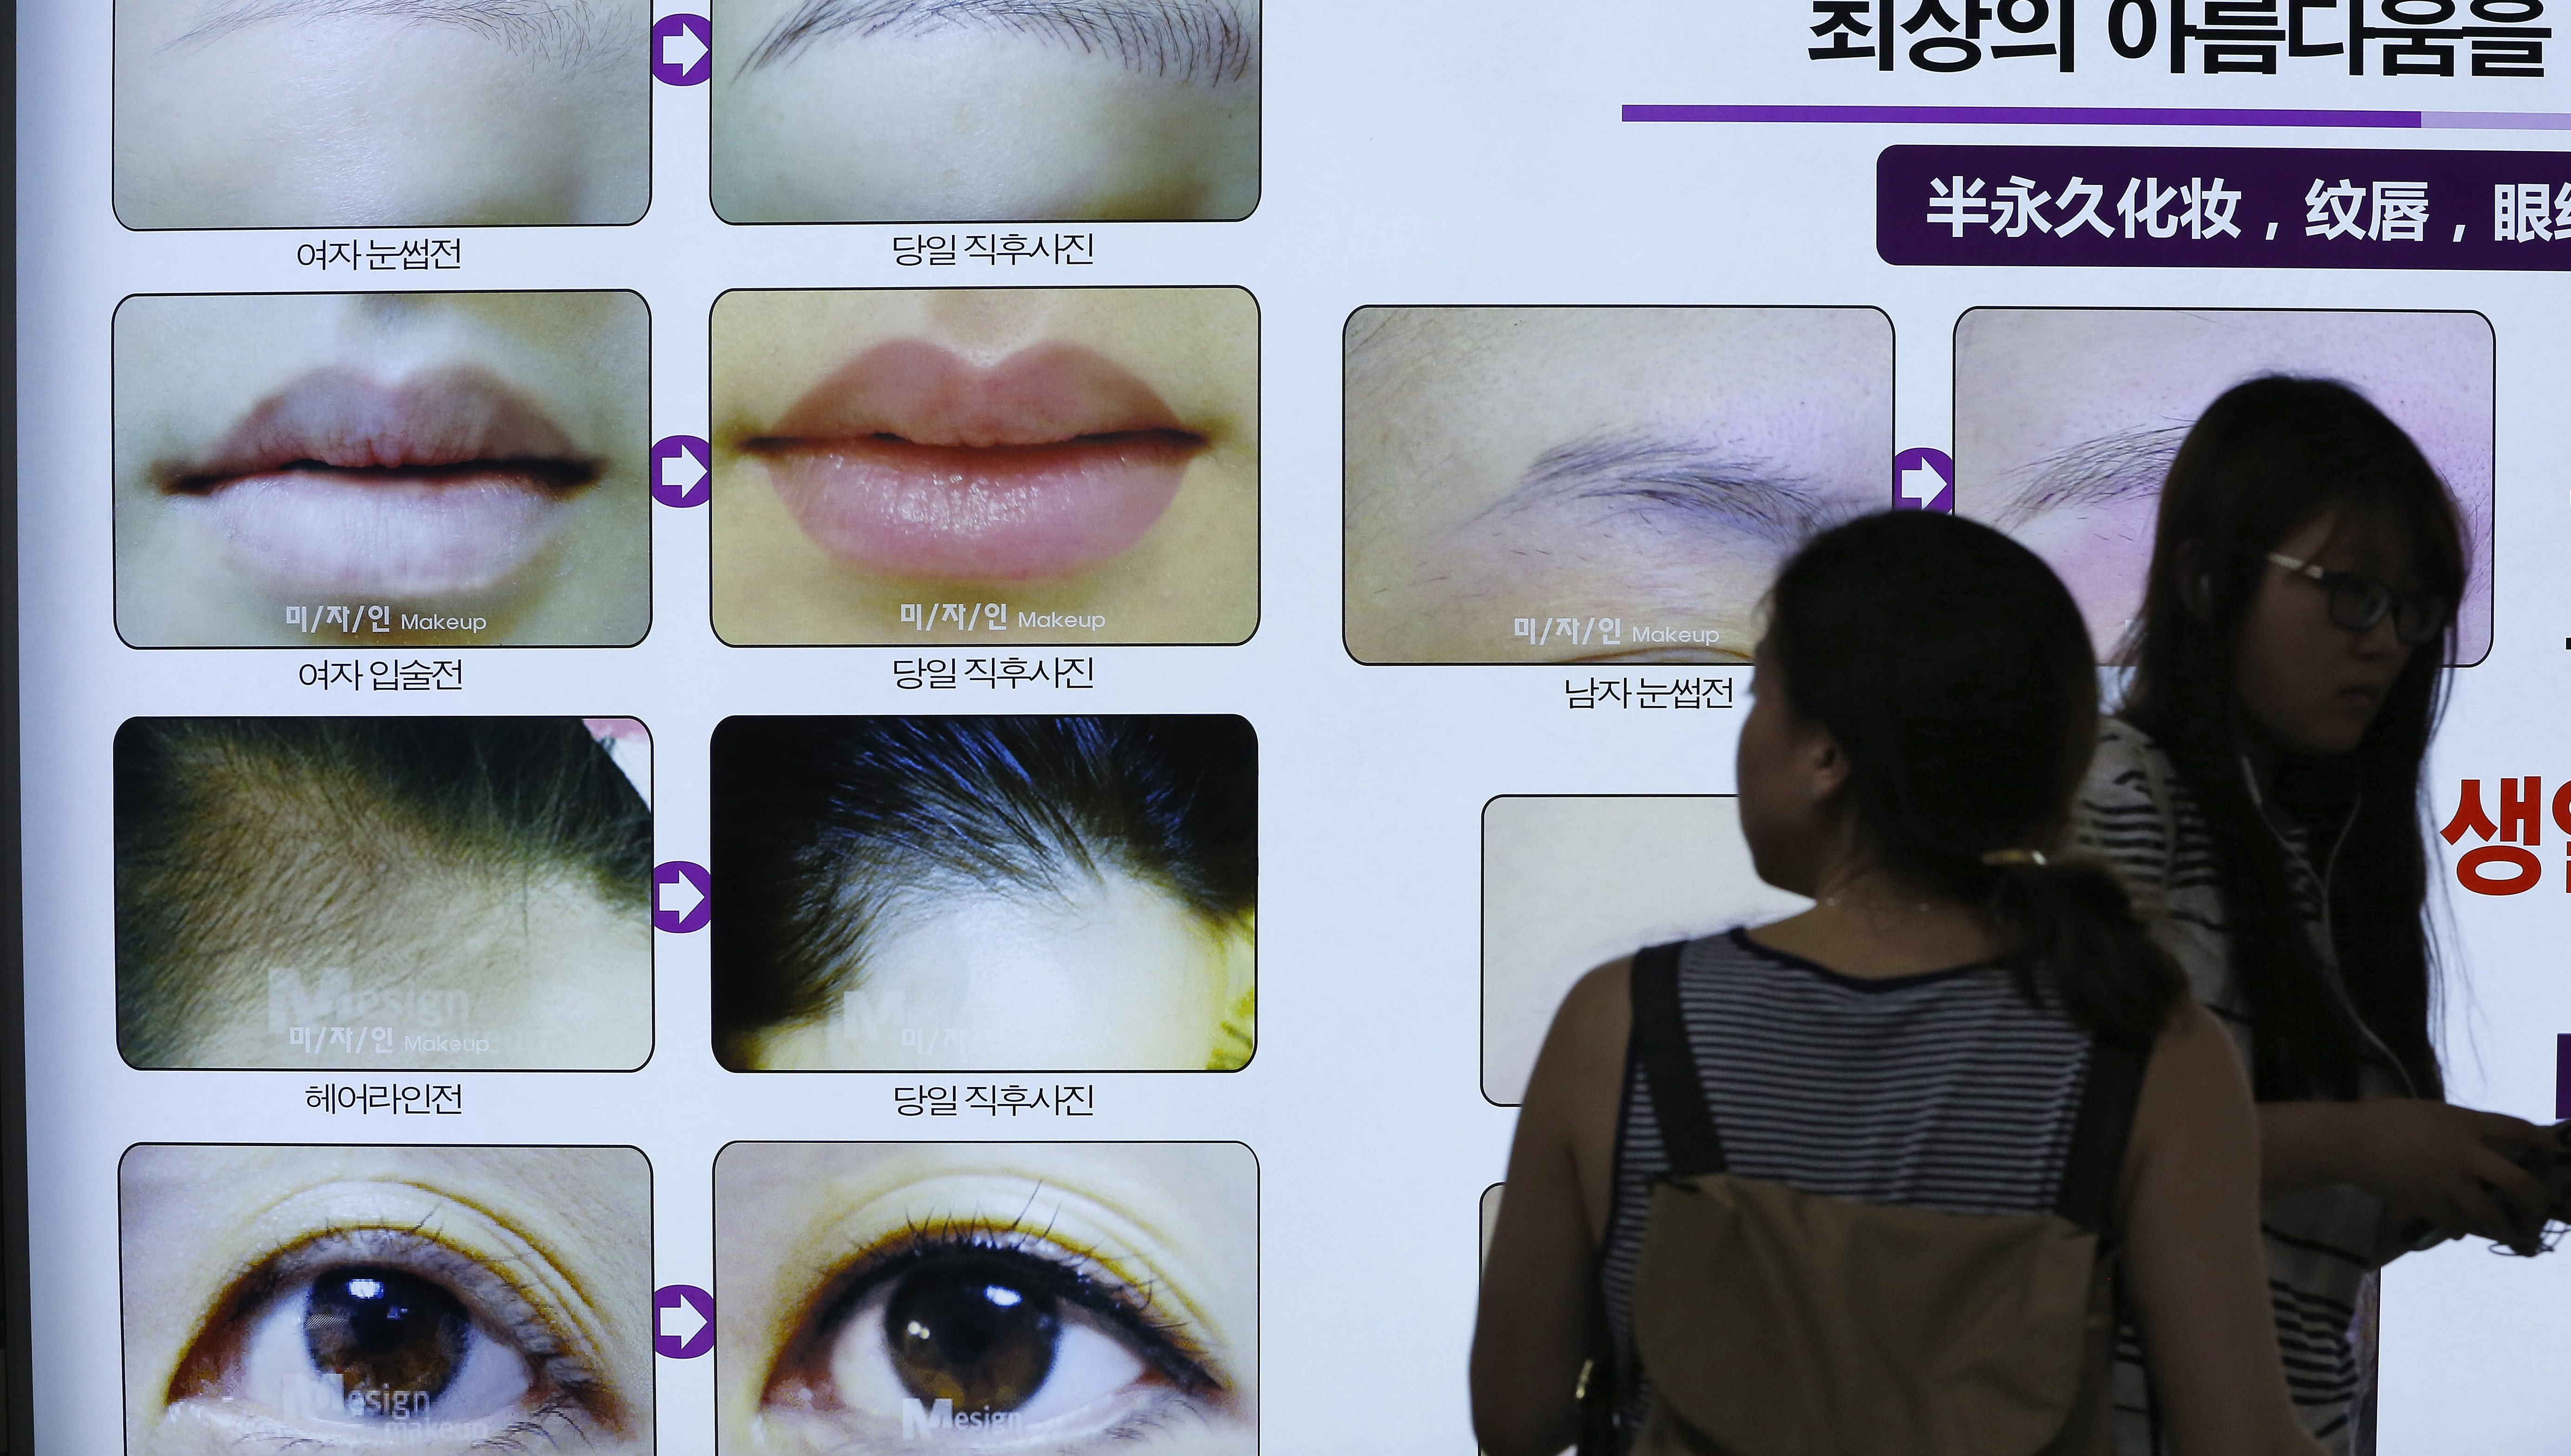 South korea is engaged in an epic battle between feminism and deep south korean women pass by an advertising board for a plastic surgery clinic at the apgujeong biocorpaavc Images